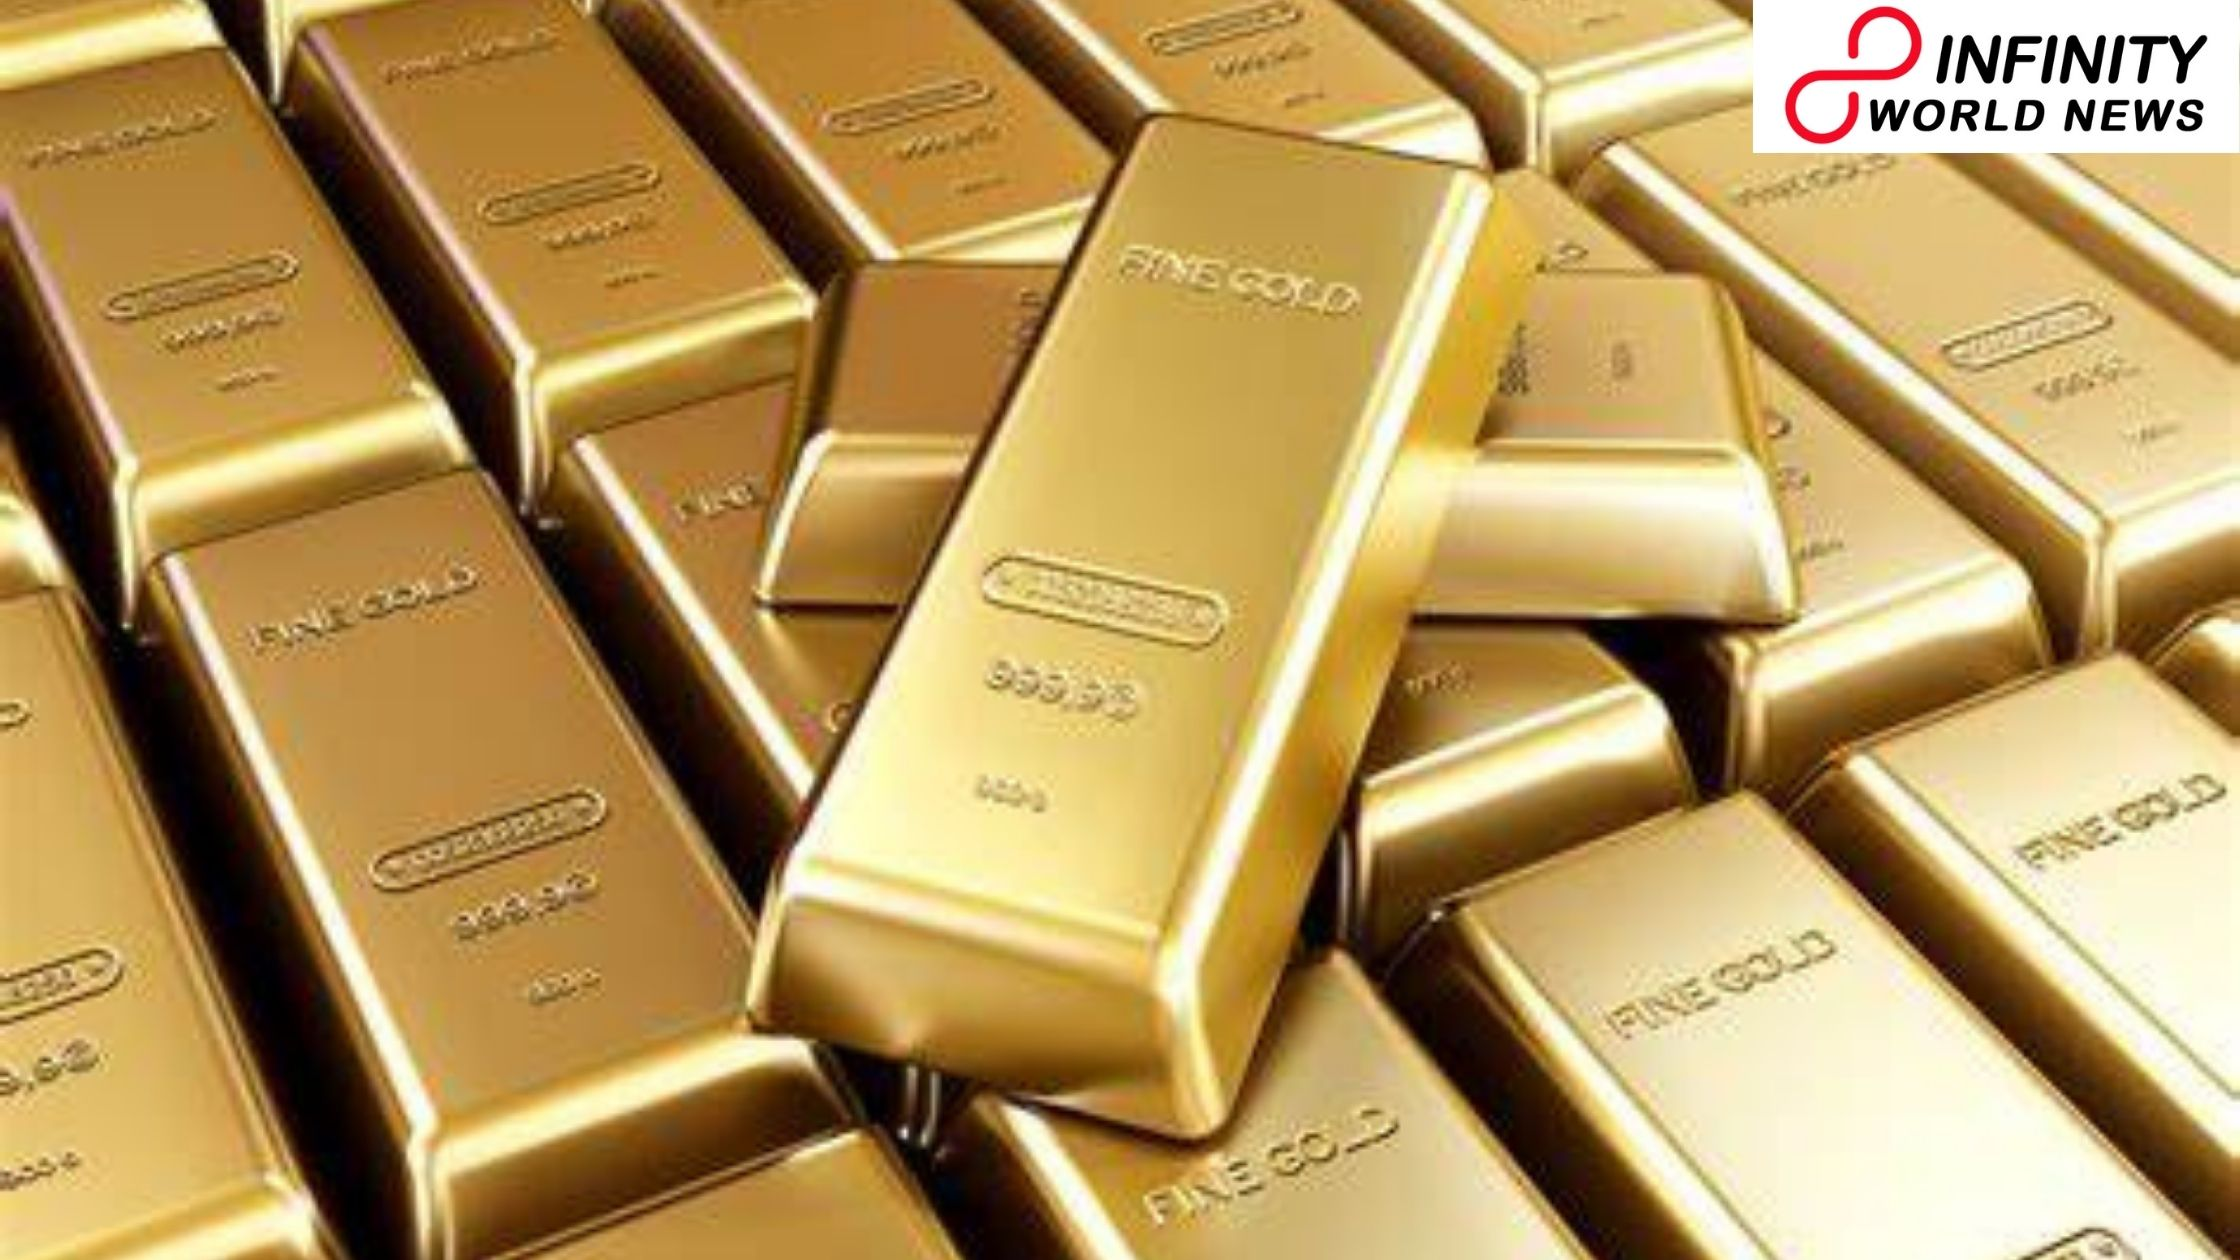 Govt offers discount to endorsers of gold bond plot utilizing digital mode